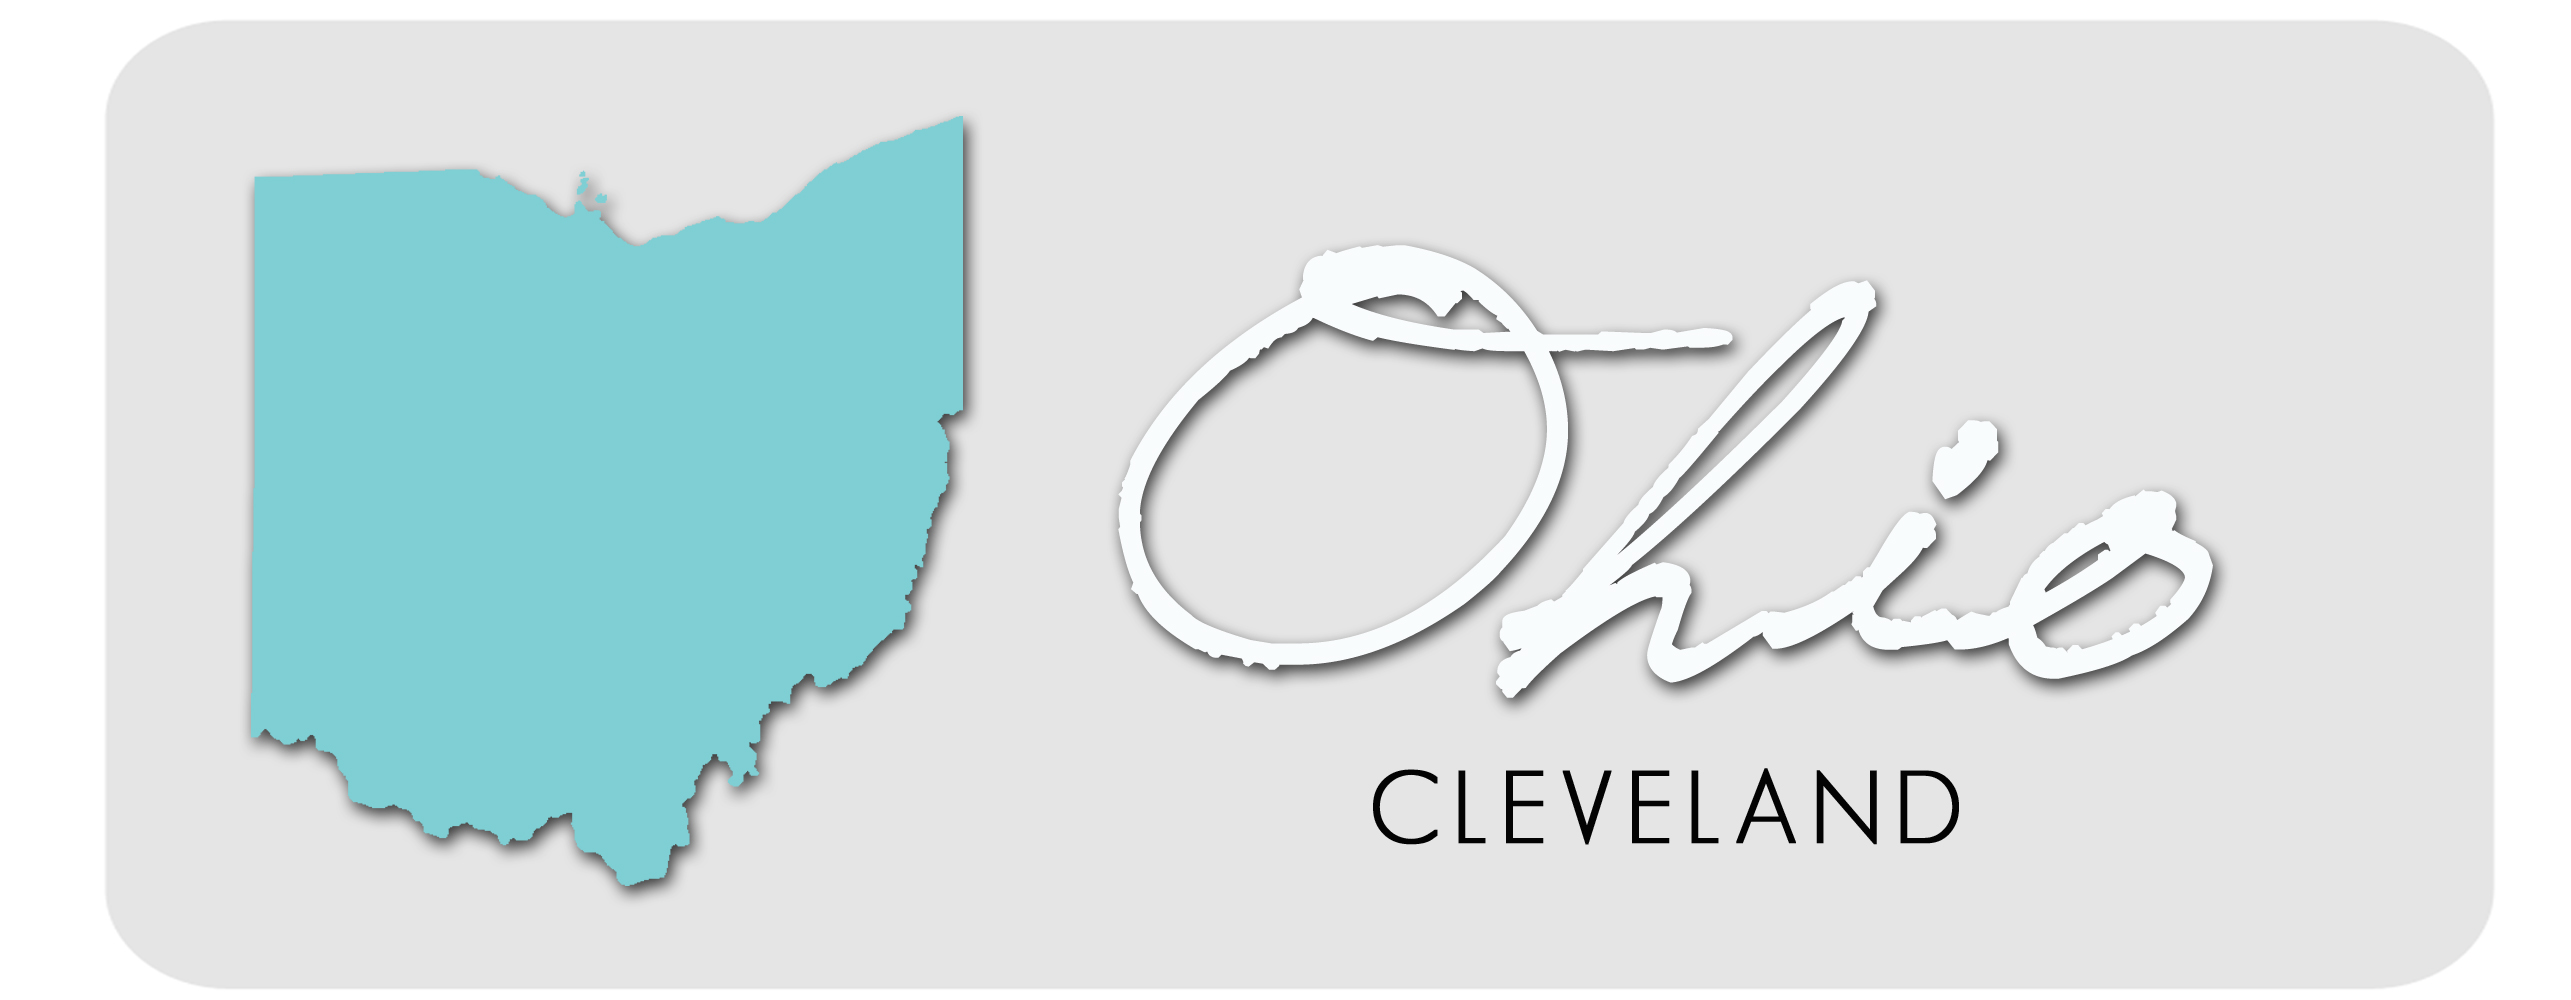 Cleveland health insurance